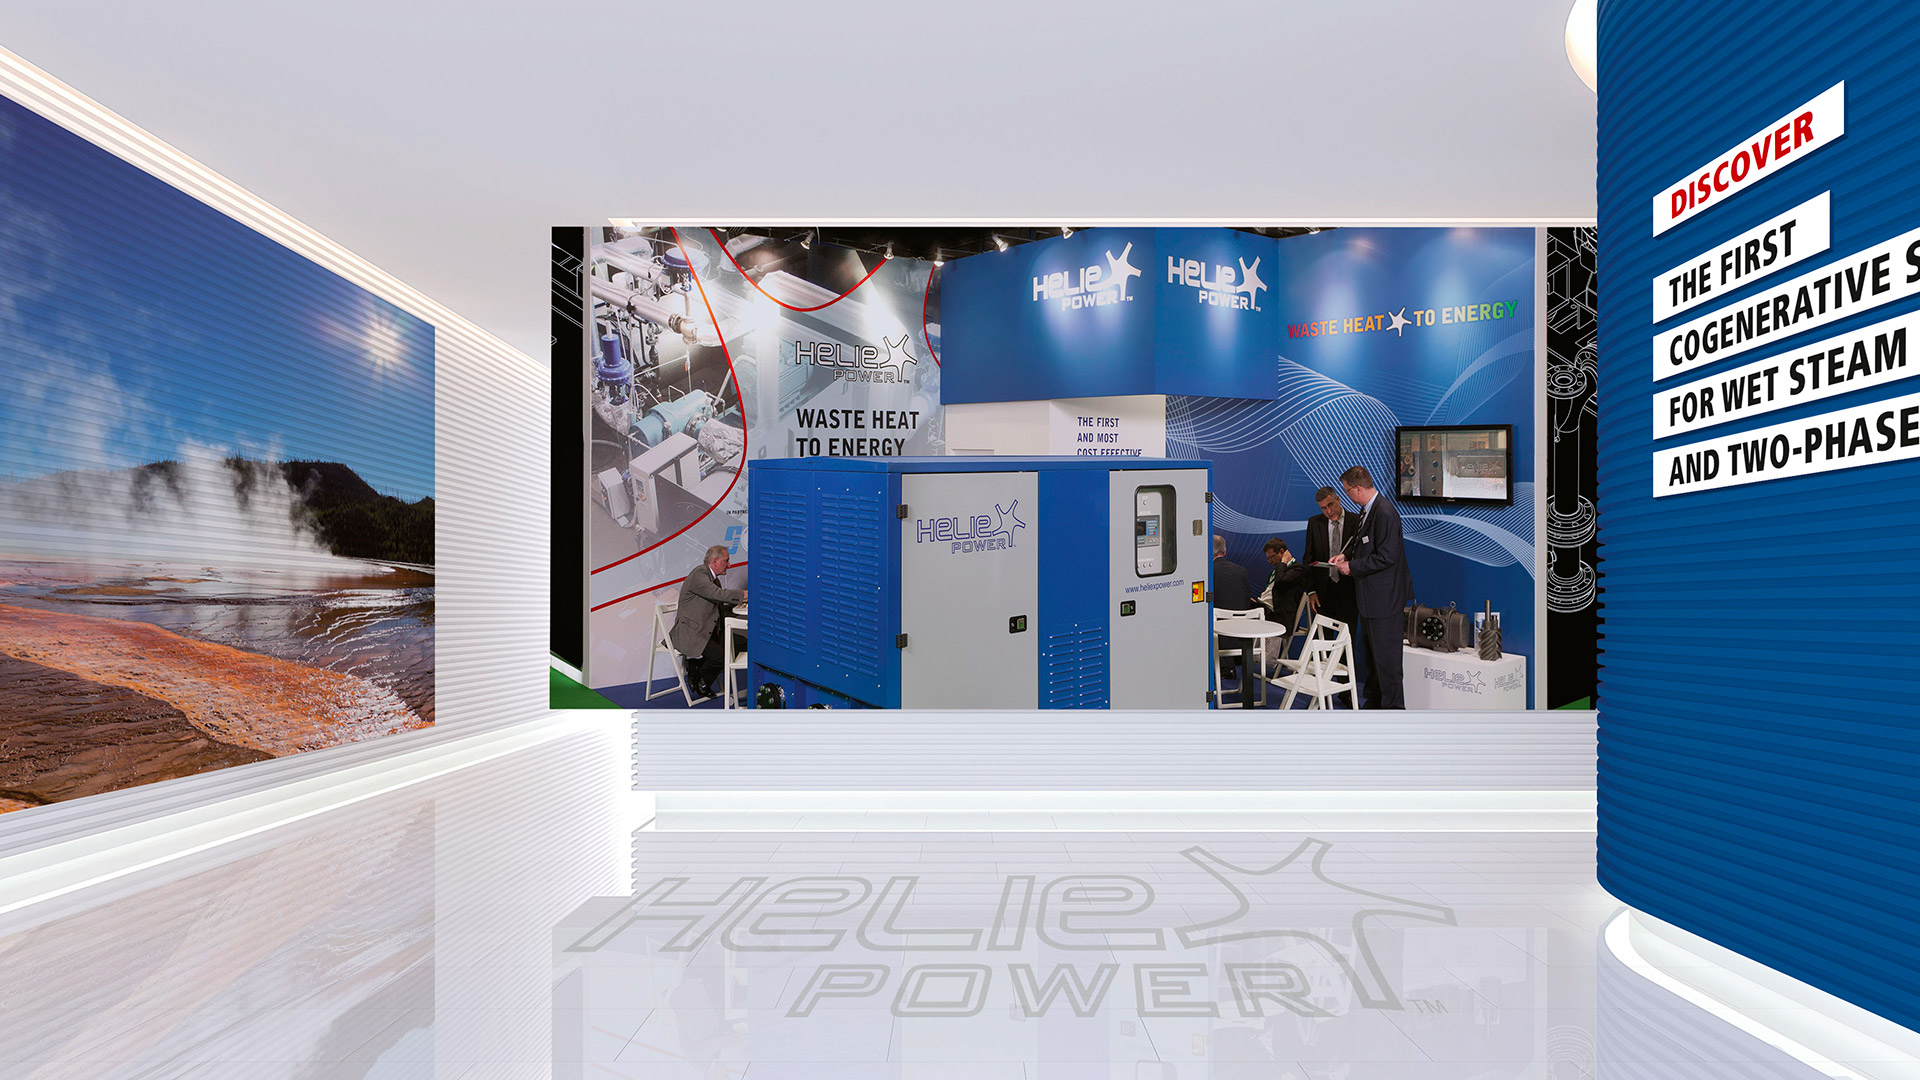 https://www.studiochiesa.it/wp-content/uploads/2020/07/SC-Studio-Chiesa-Communication_Energia-Ambiente-Heliex-Power-exhibitions.jpg